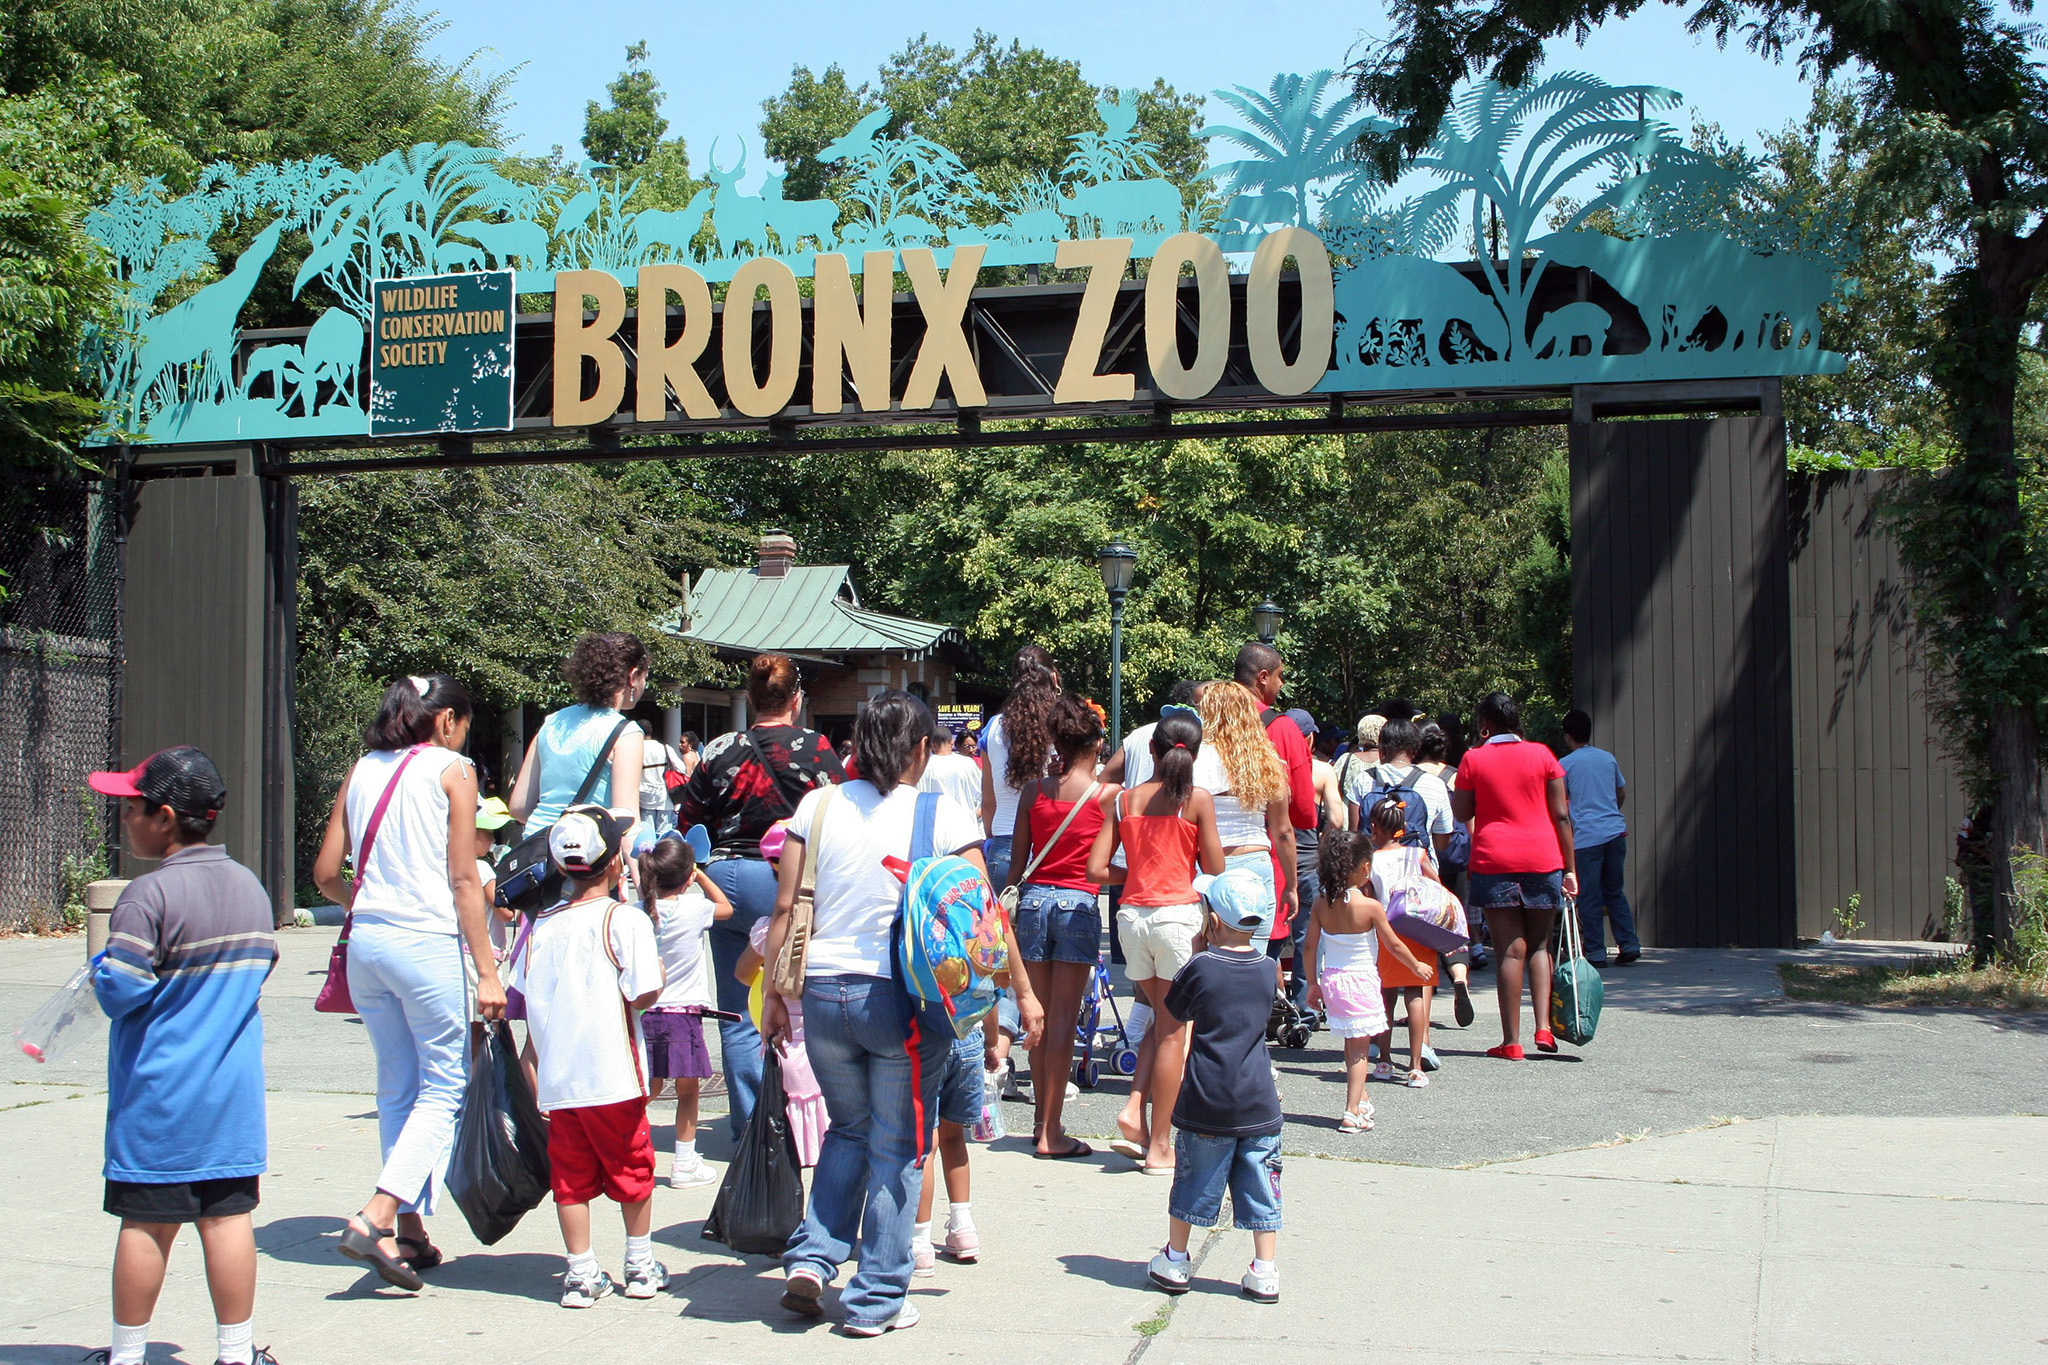 Best family attraction: Bronx Zoo